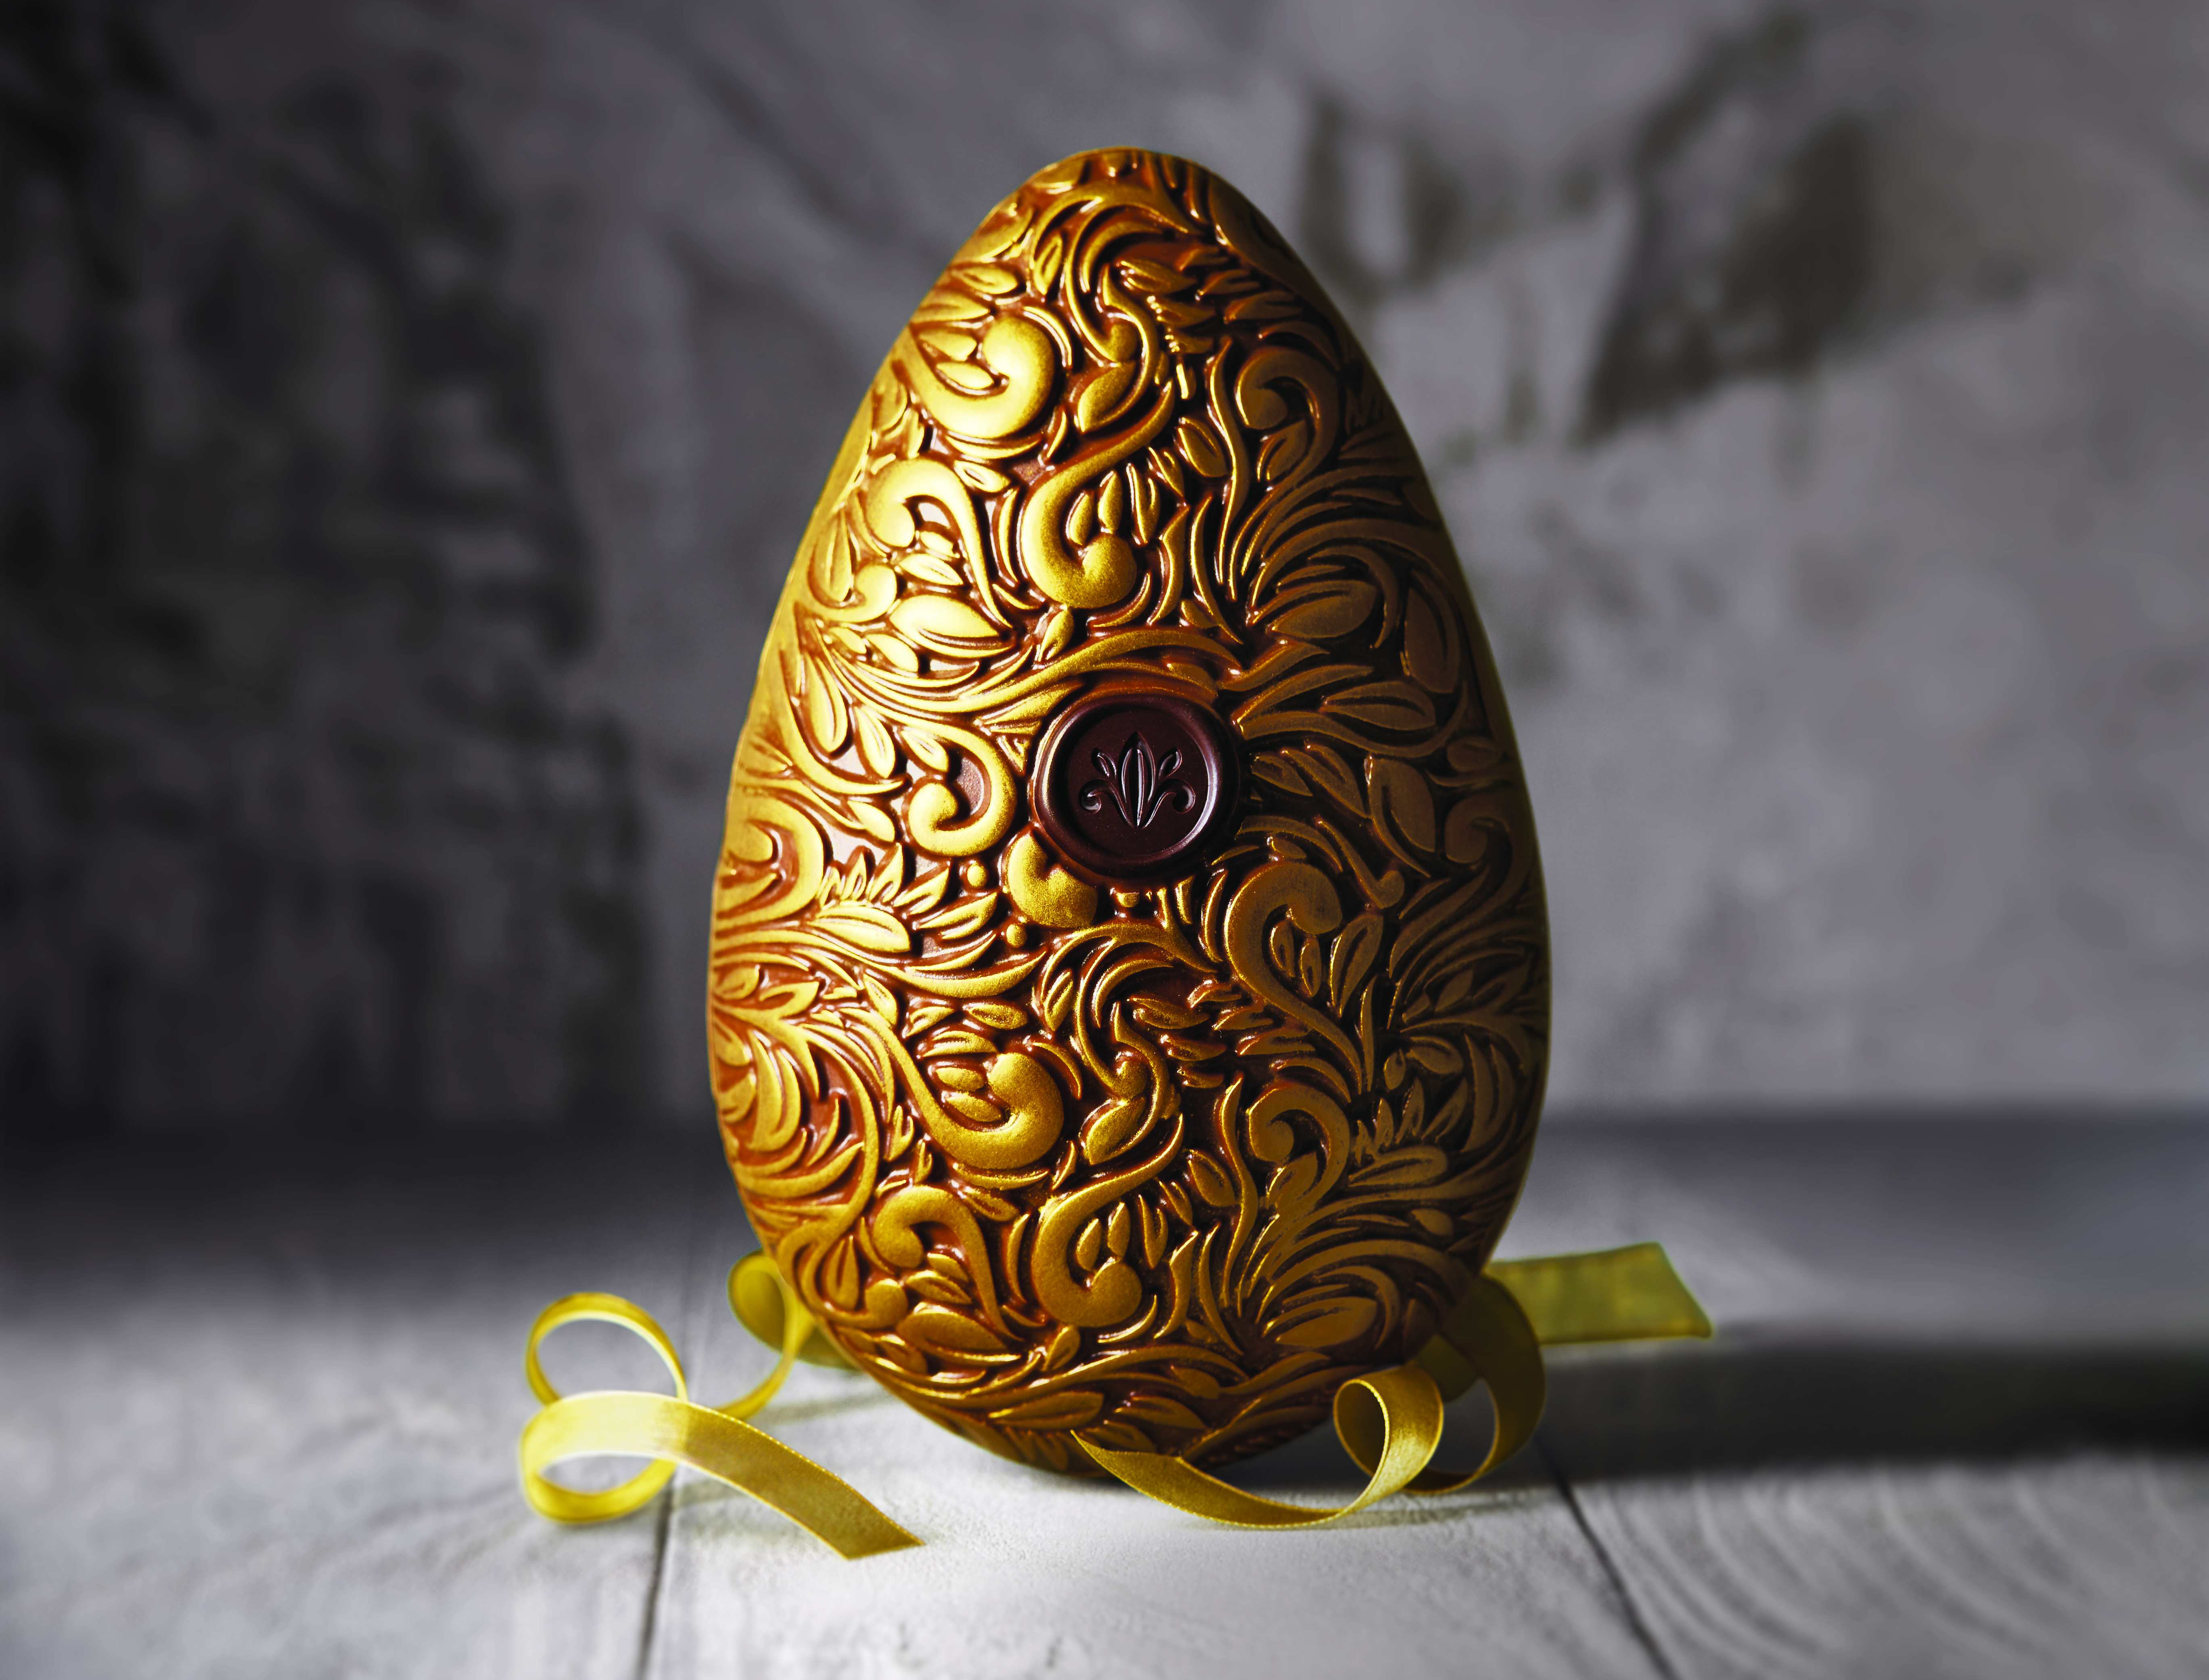 Aldi Specially Selected Exquisite Imperial Easter Egg, £8.99 (Aldi/PA)